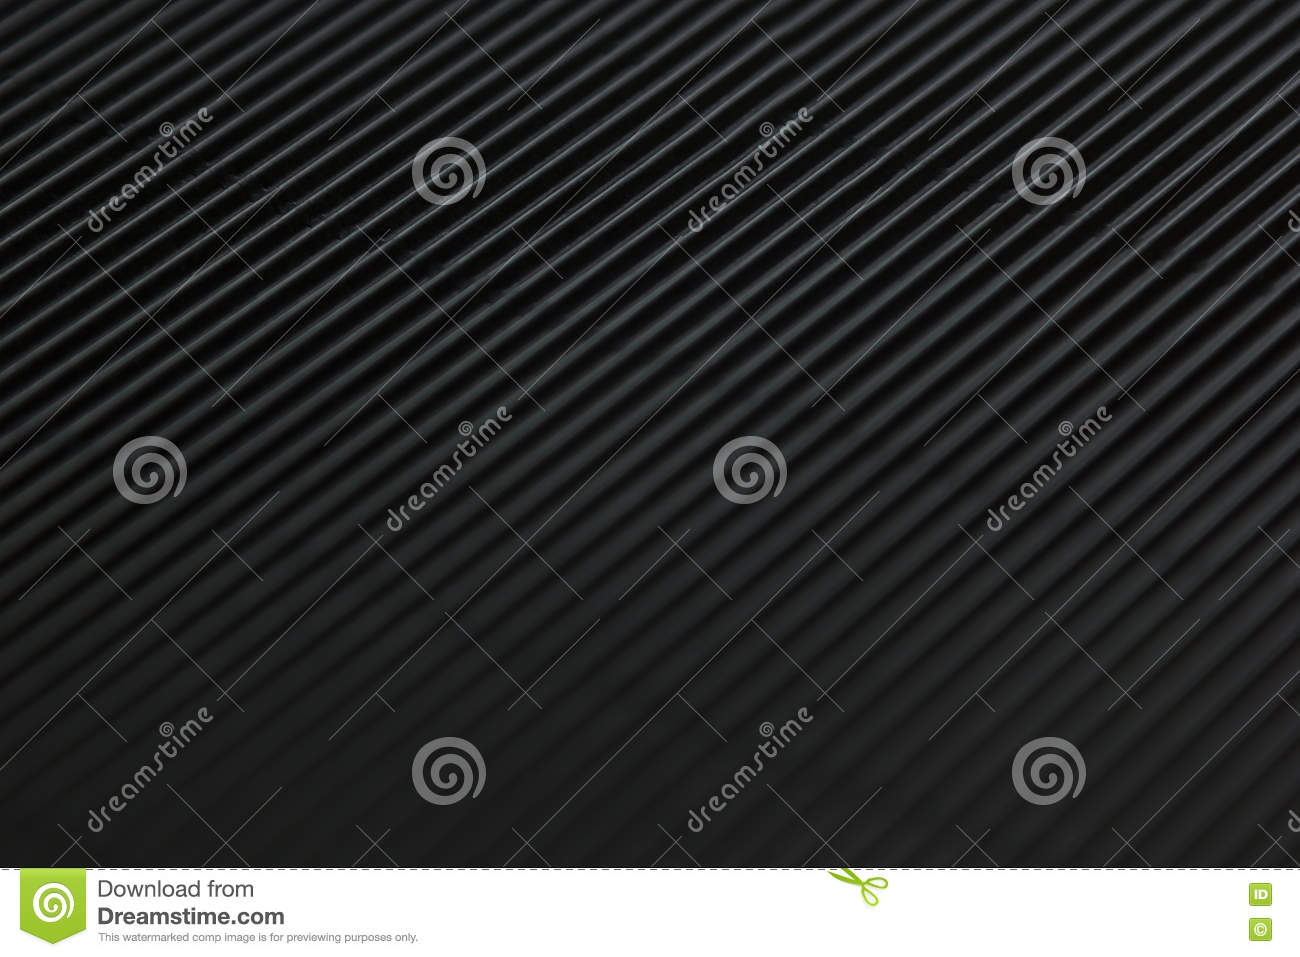 Download Abstract Minimalistic Black Striped Background With Diagonal Lines And Header. Stock Photo - Image of neutral, luxury: 71070022